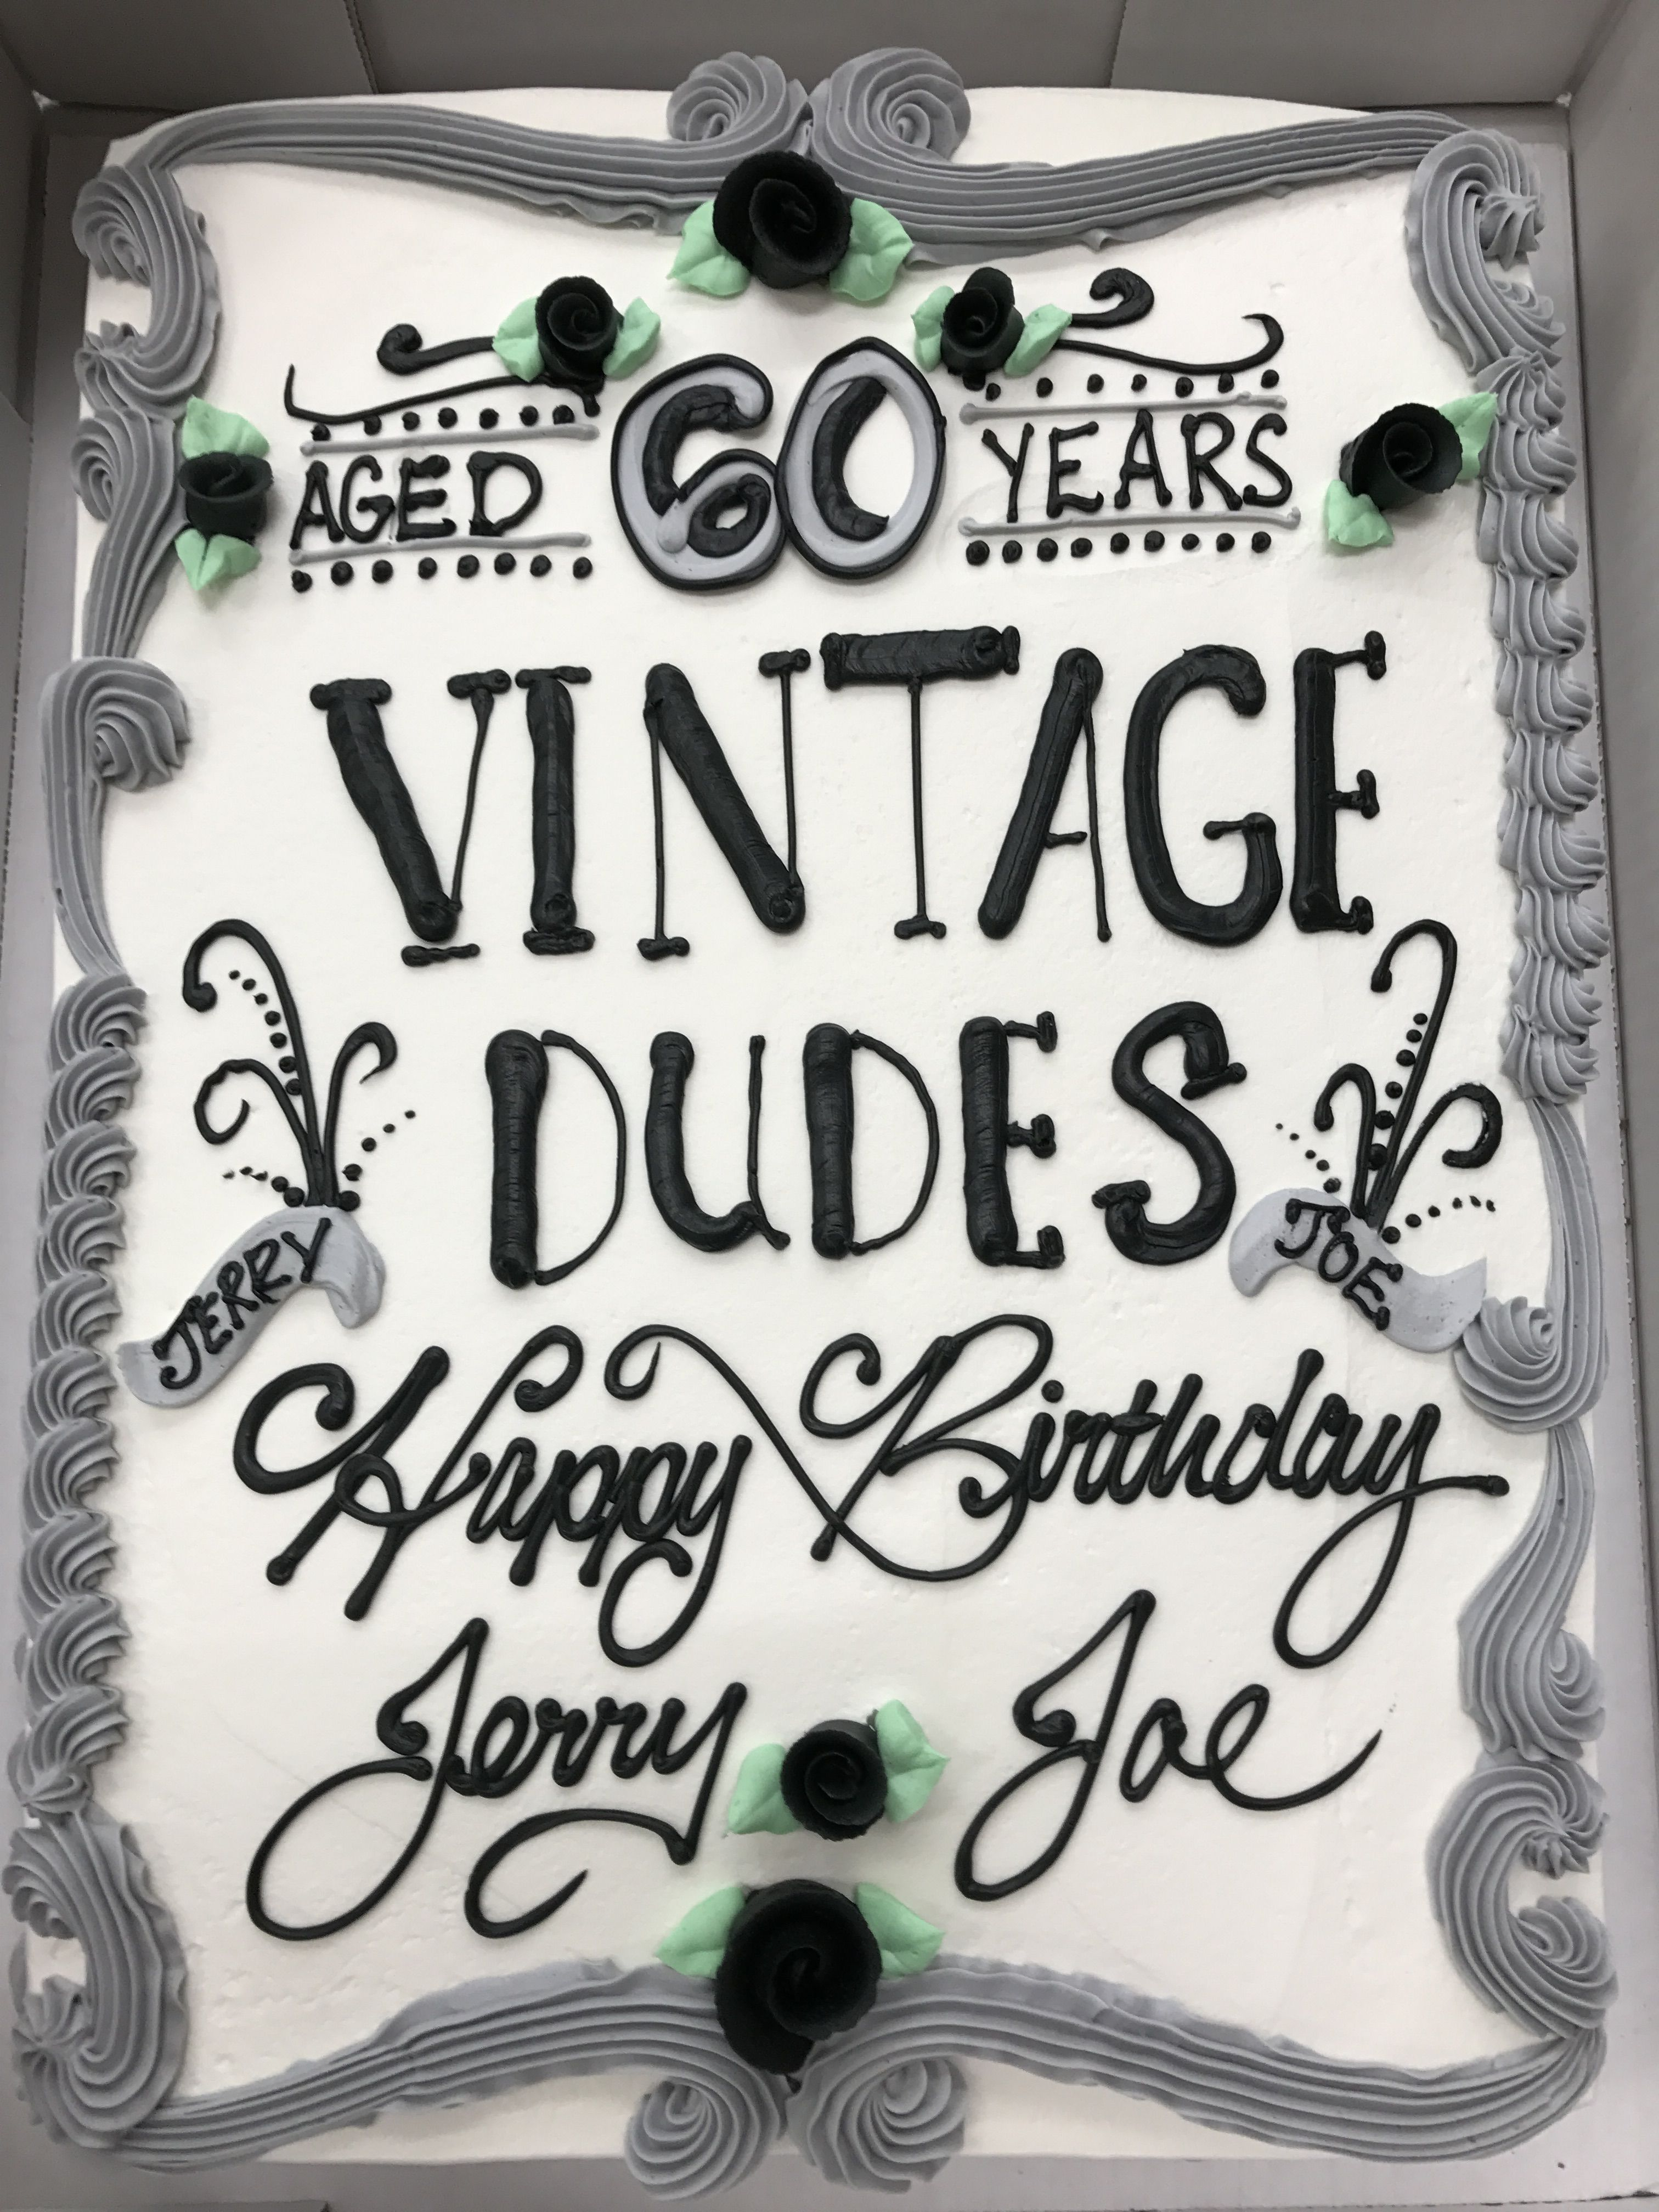 Vintage Dudes With Images Birthday Cakes For Men 60th